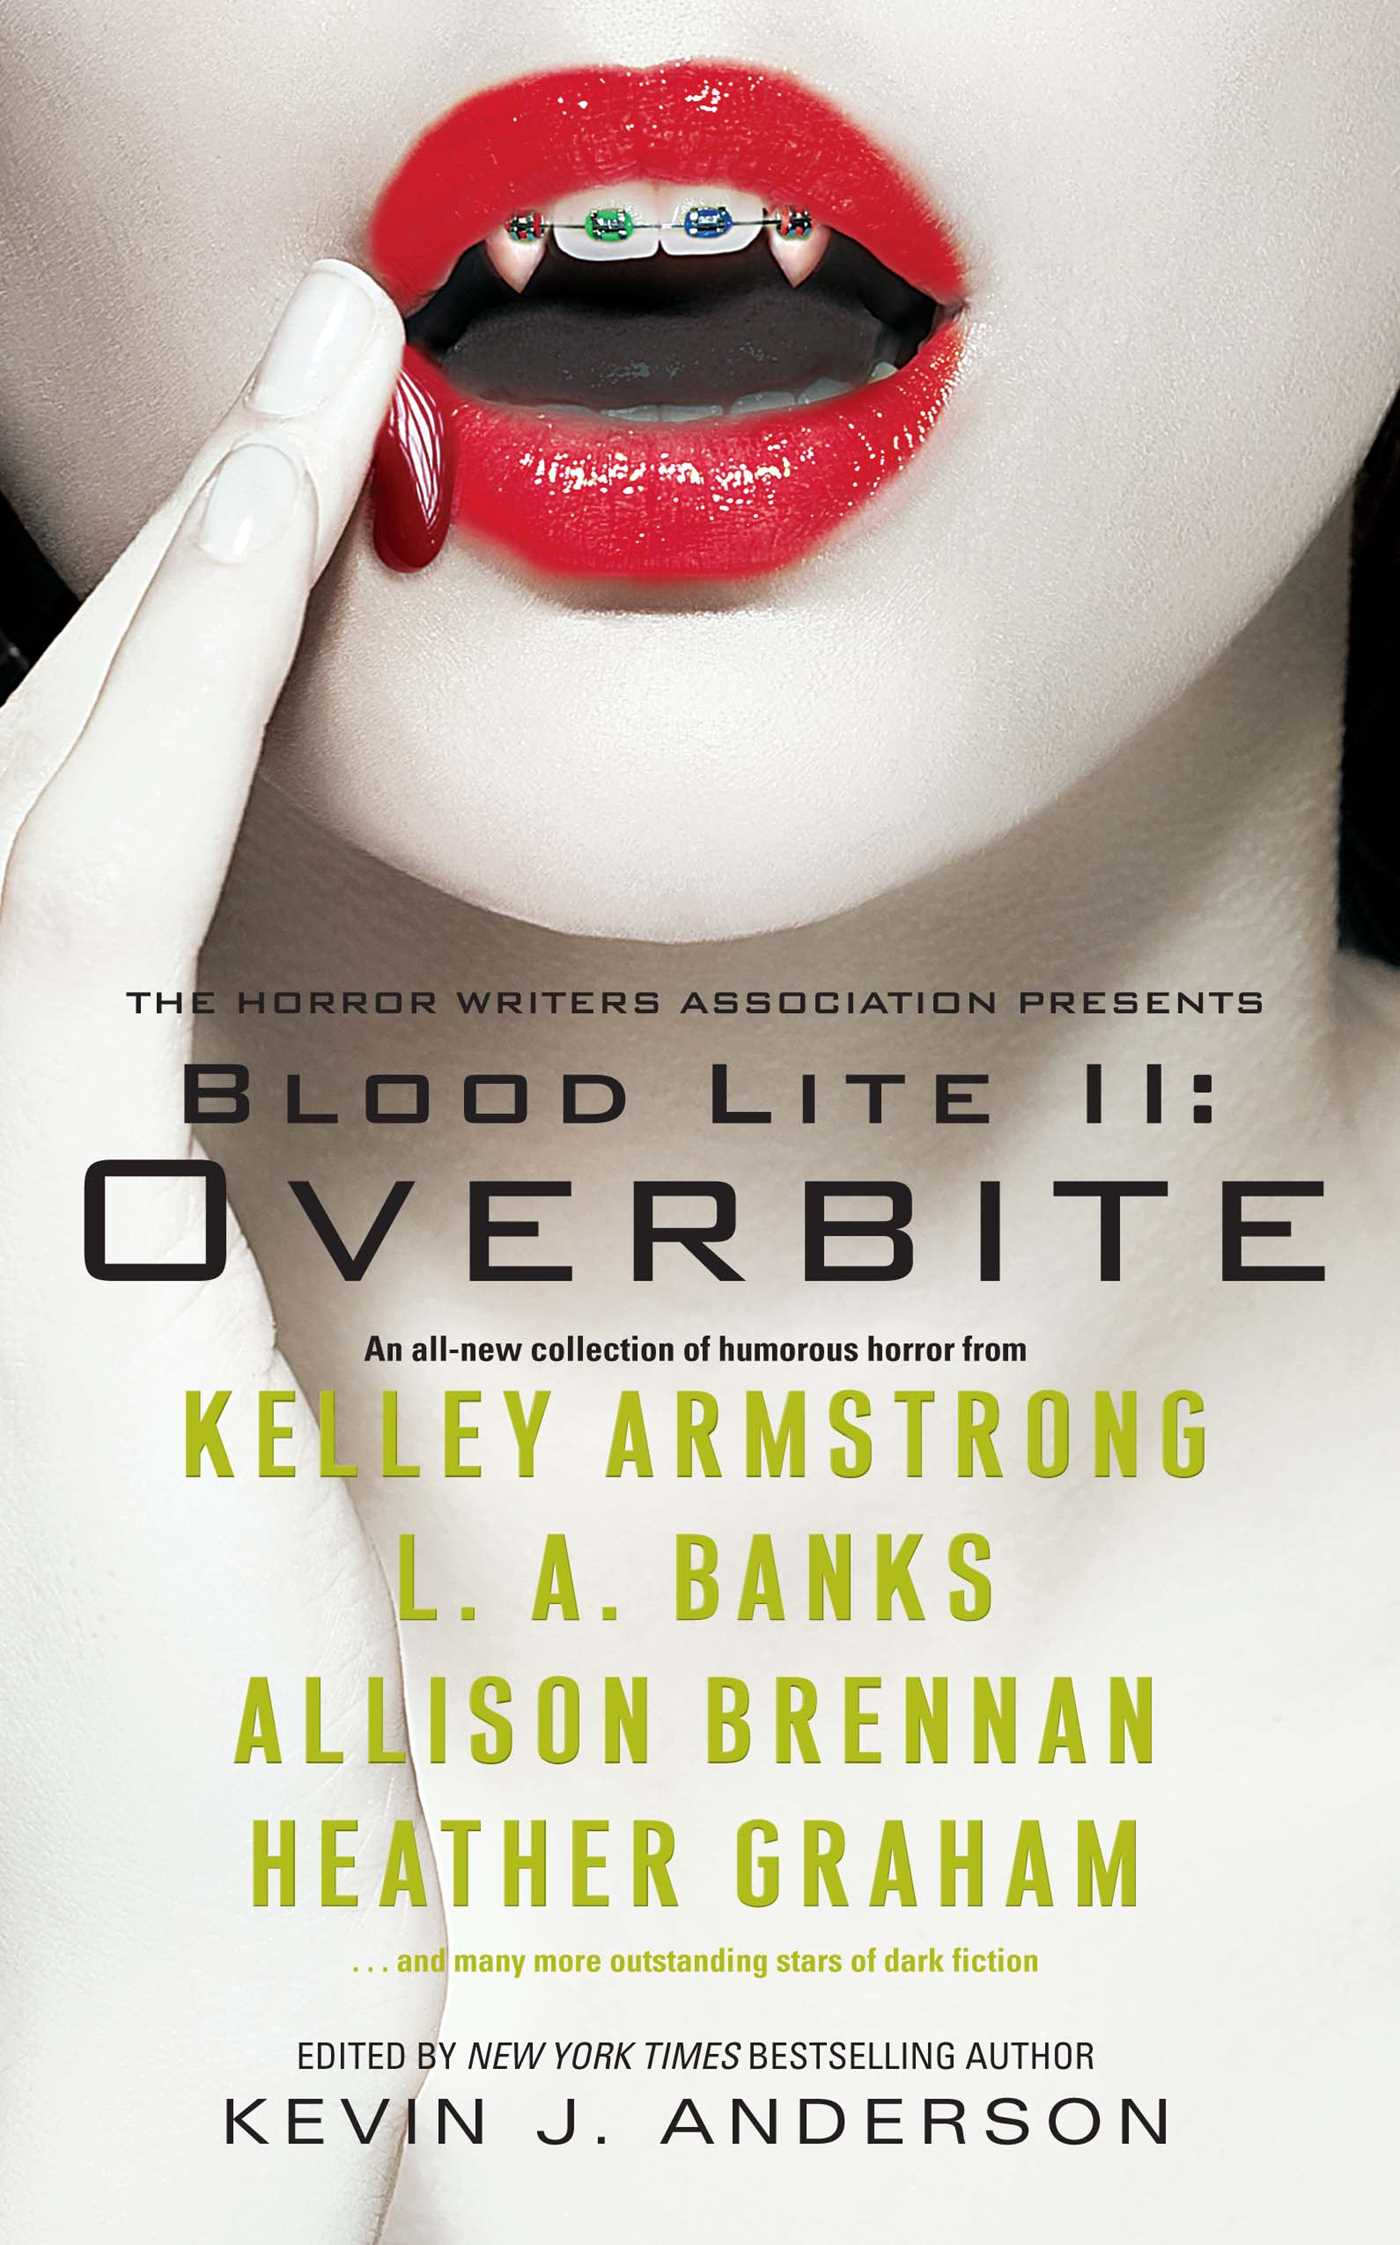 Blood-lite-ii-overbite-9781439187654_hr